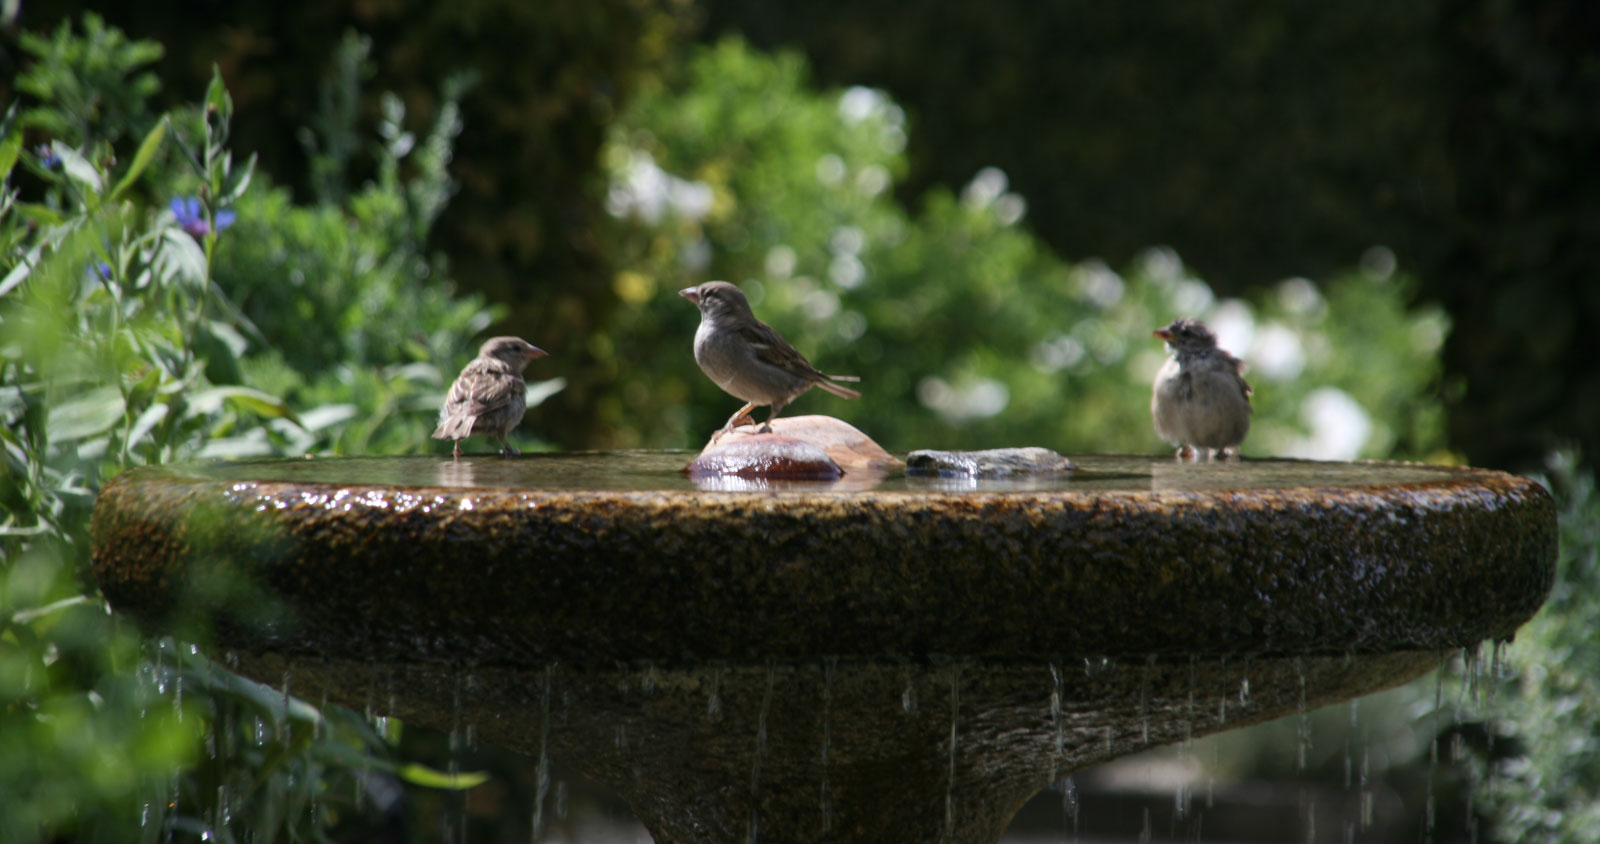 Garden of the Five Senses in Yvoire: the bath of the birds.